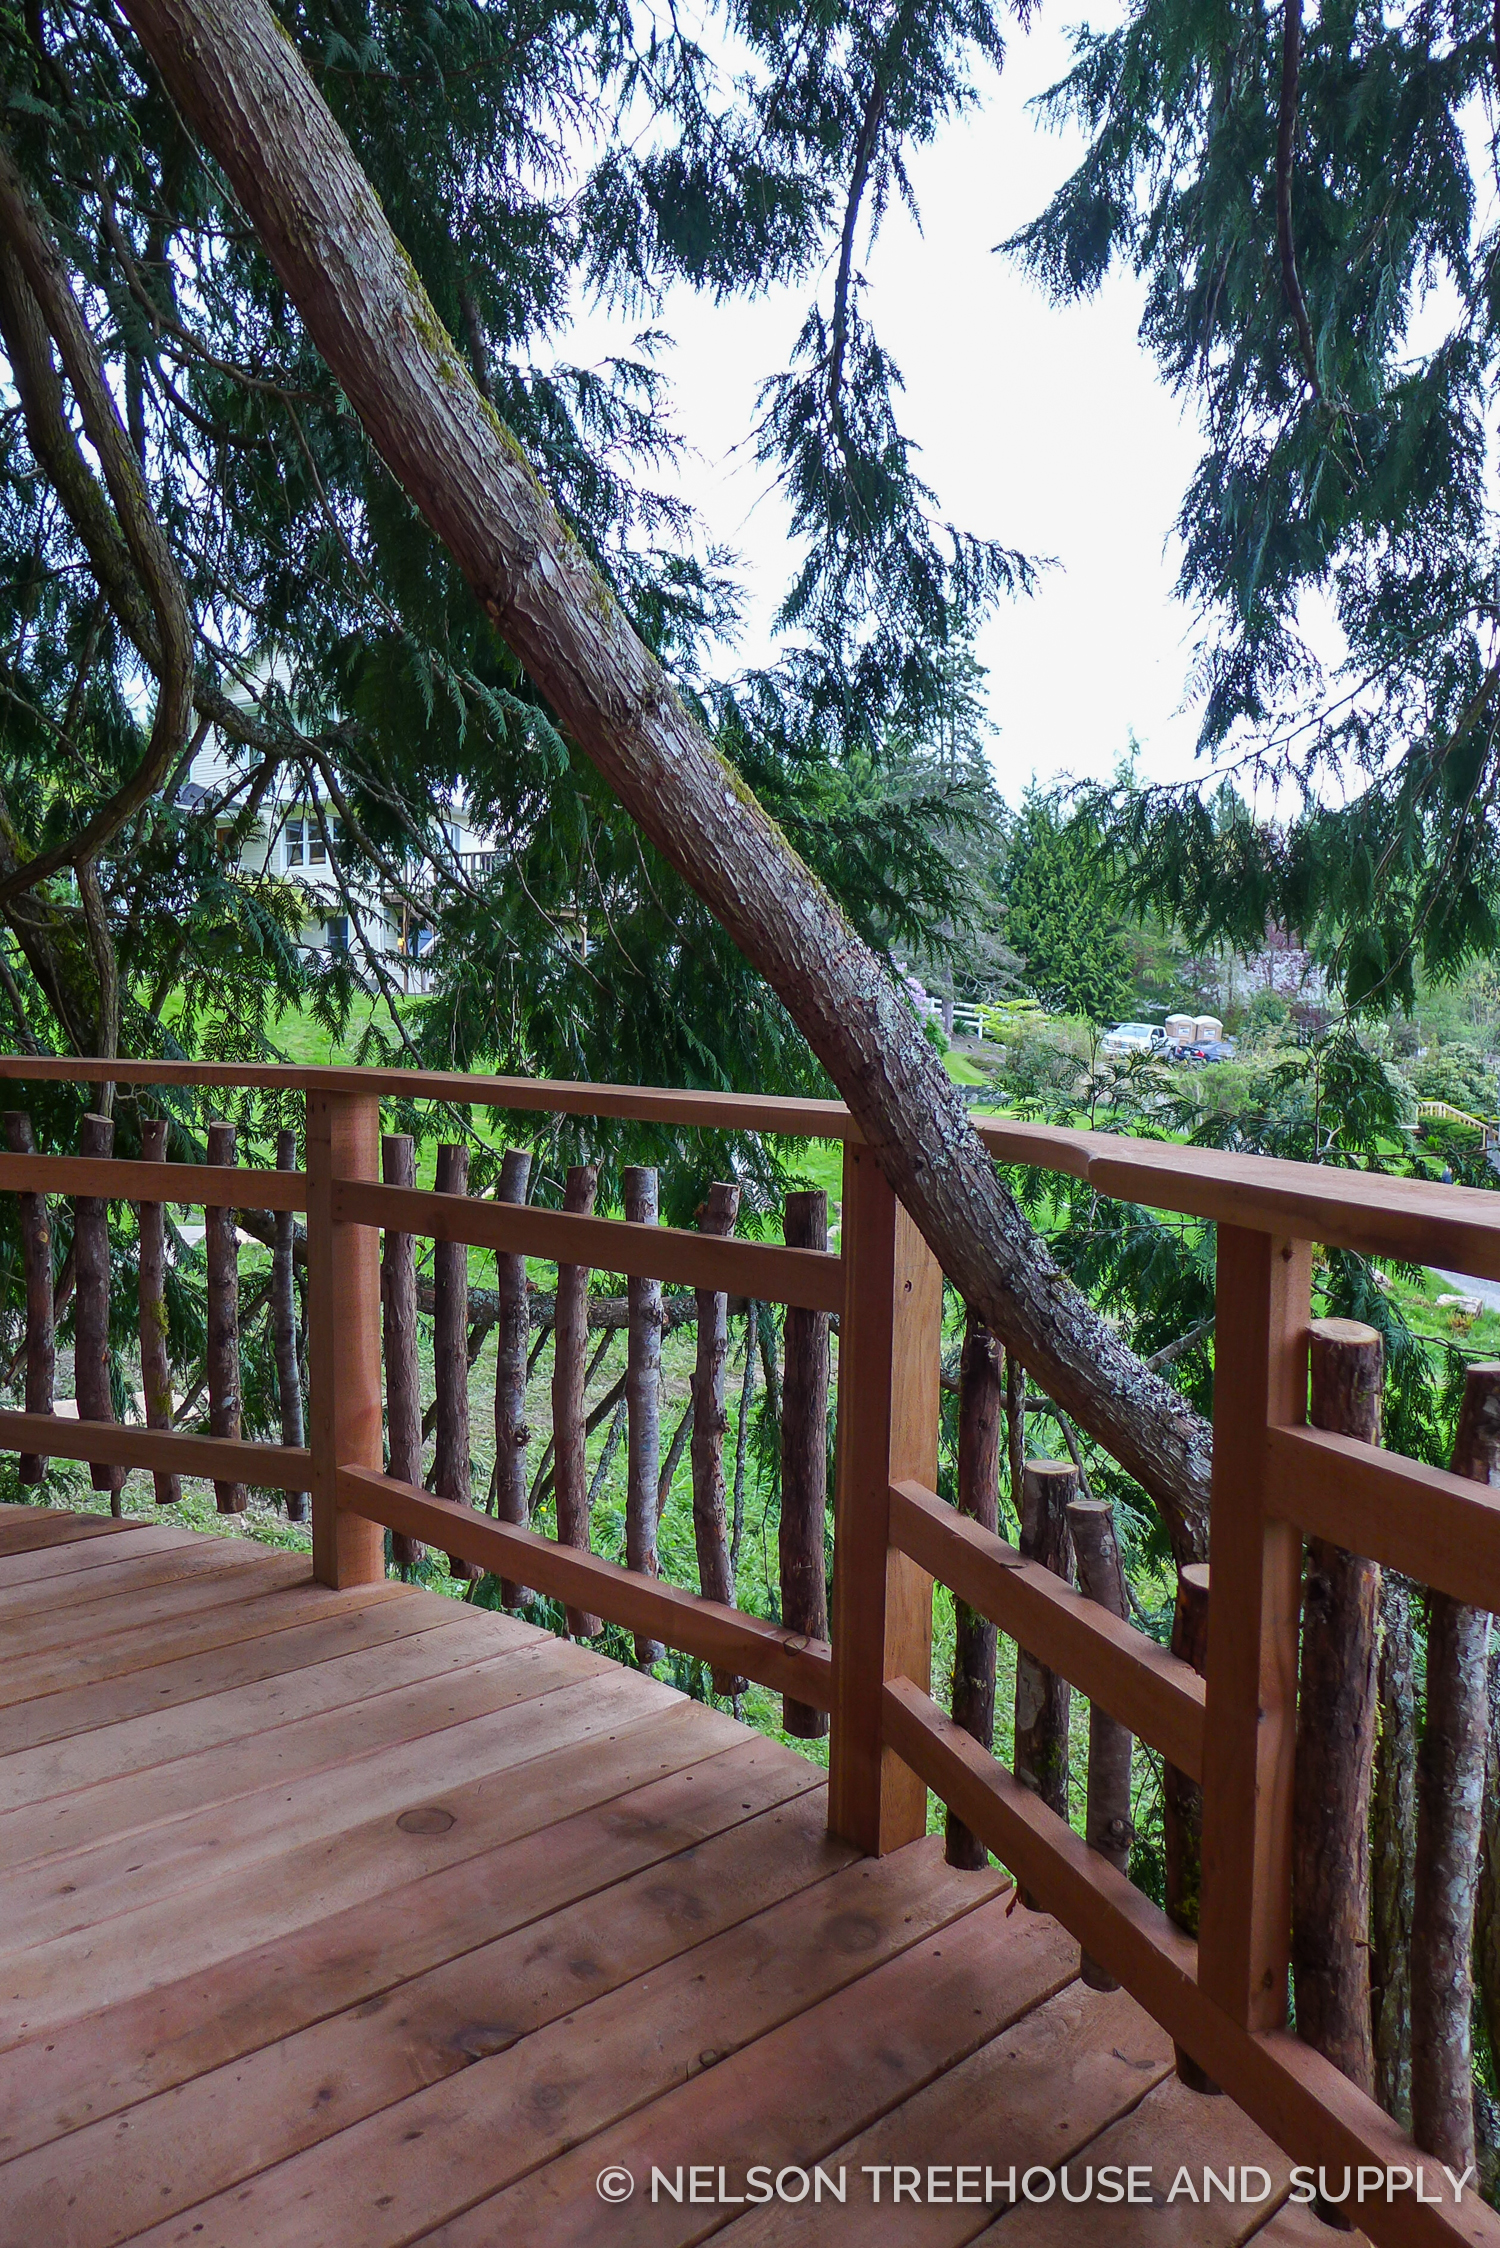 Instead of cutting this branch, the crew built the railing around it!